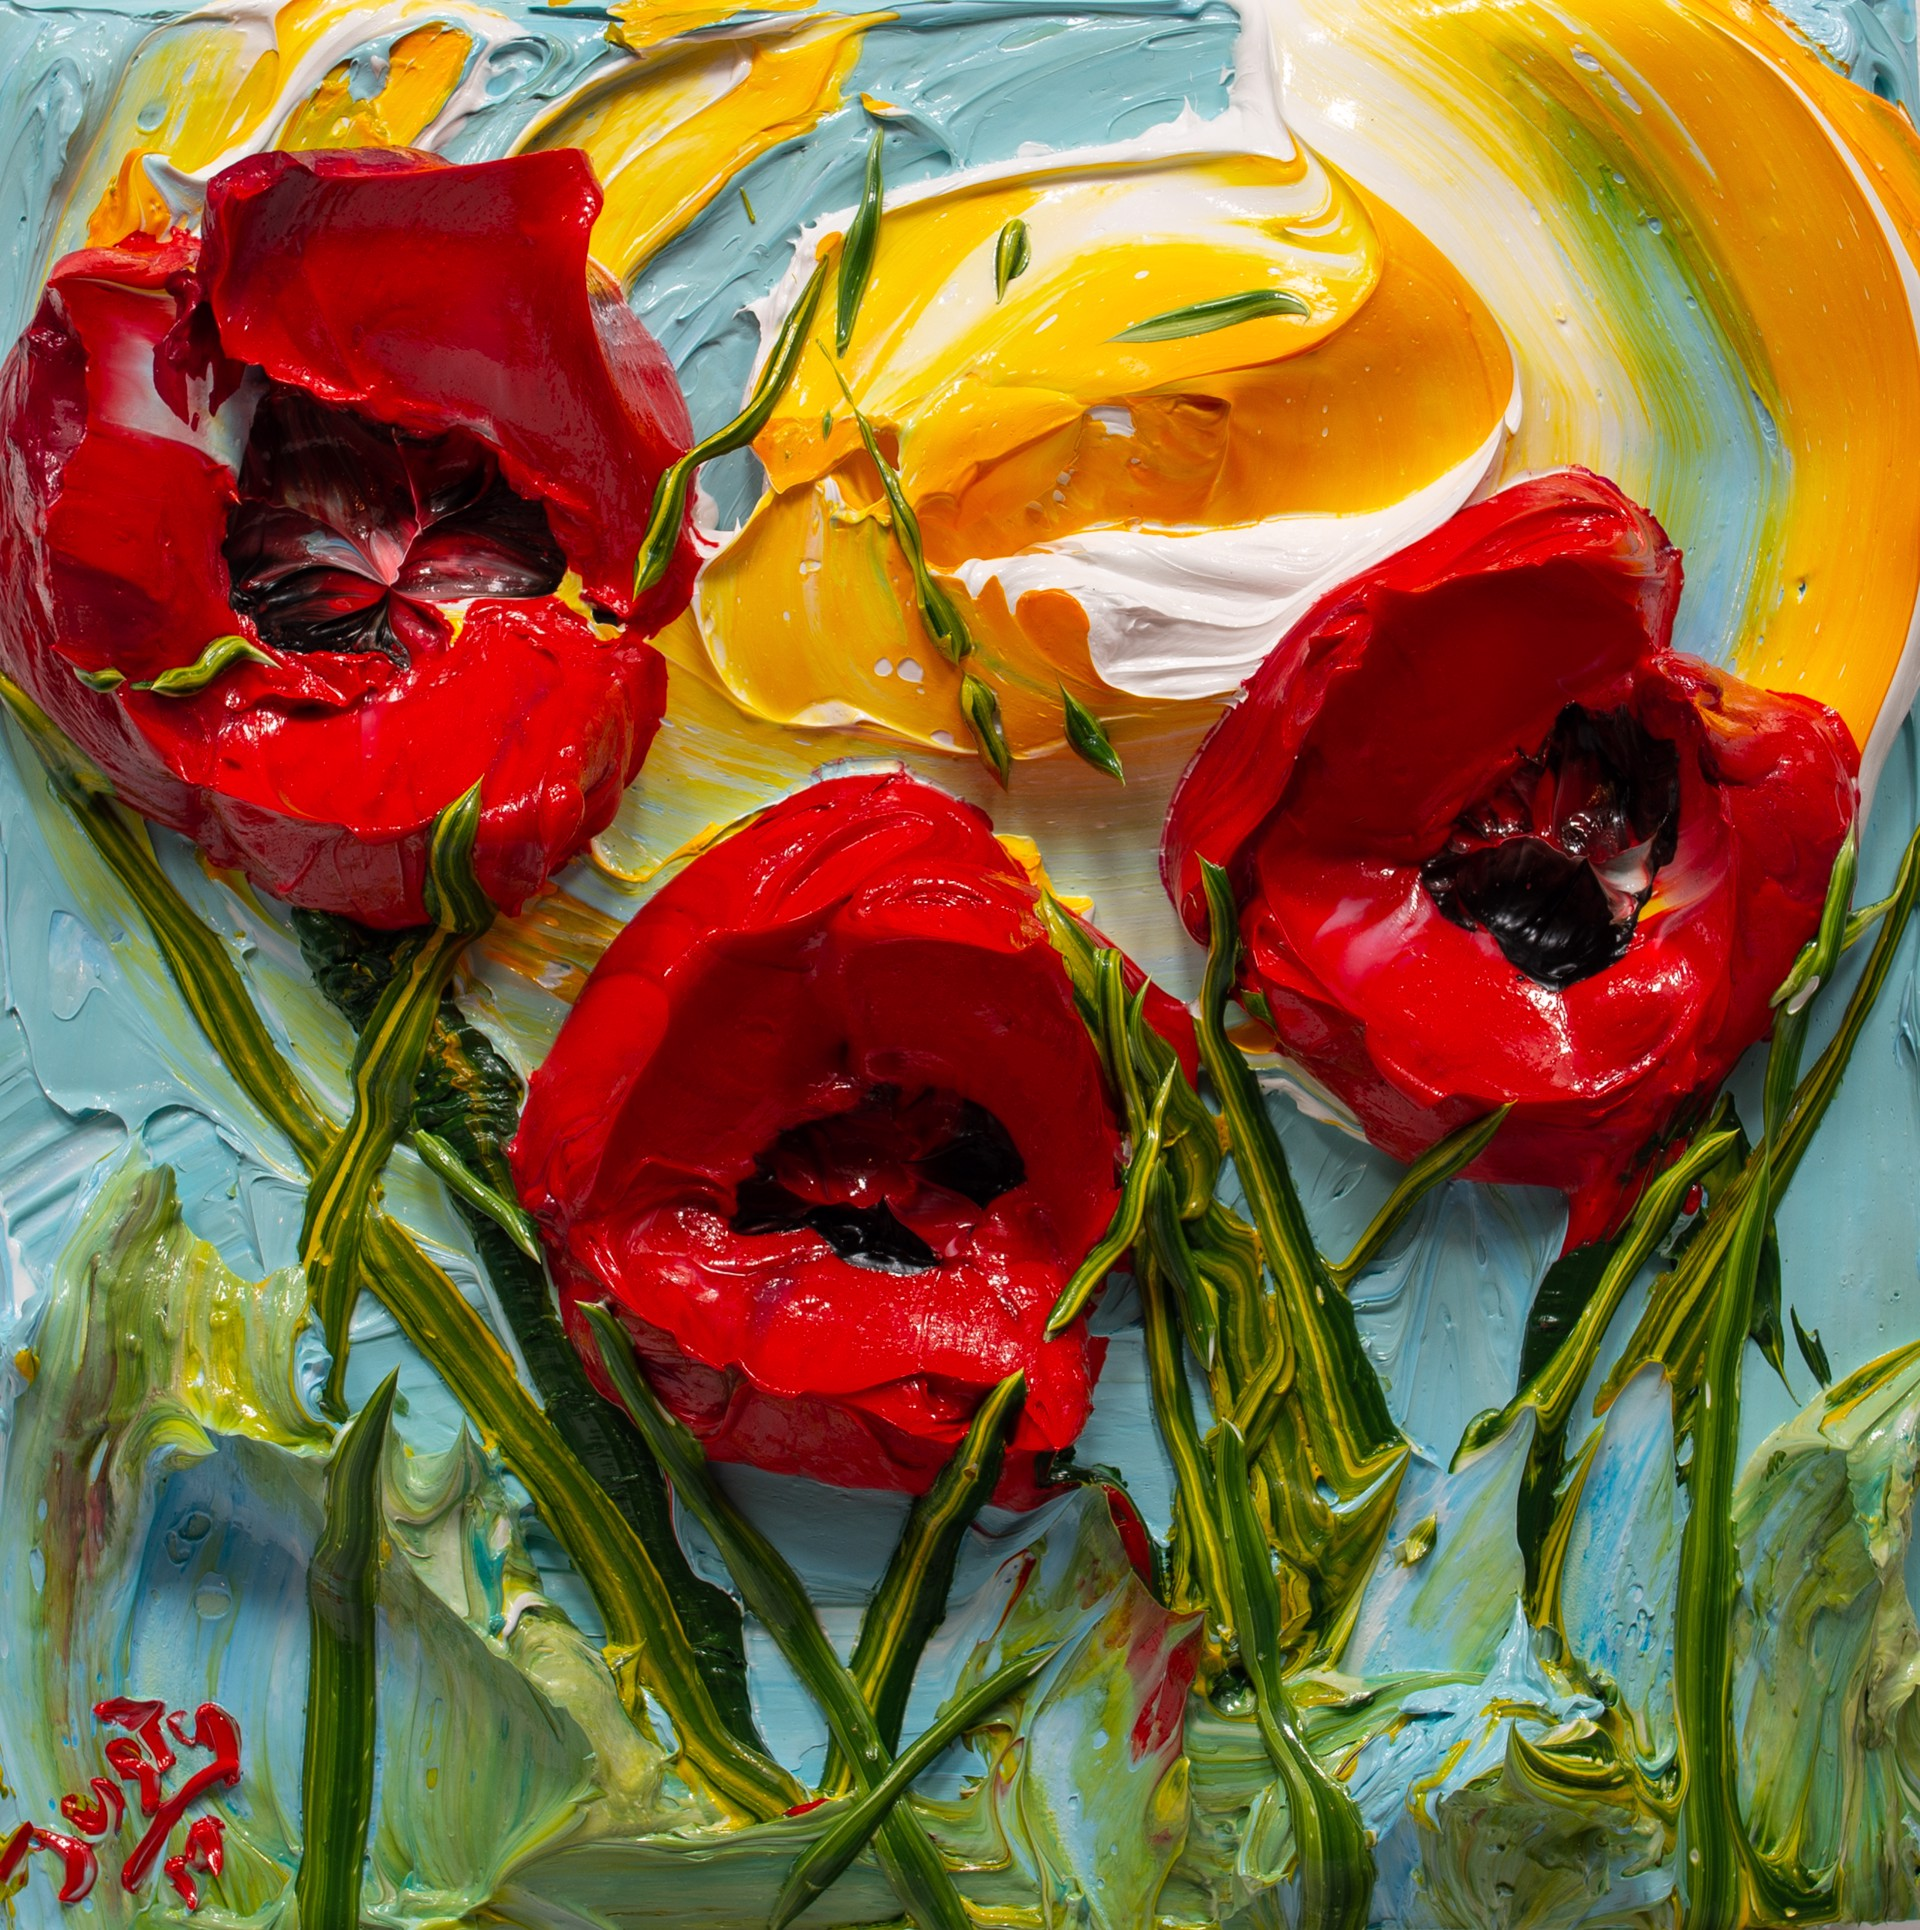 POPPY FLOWERS-PF-12X12-2019-172 by JUSTIN GAFFREY